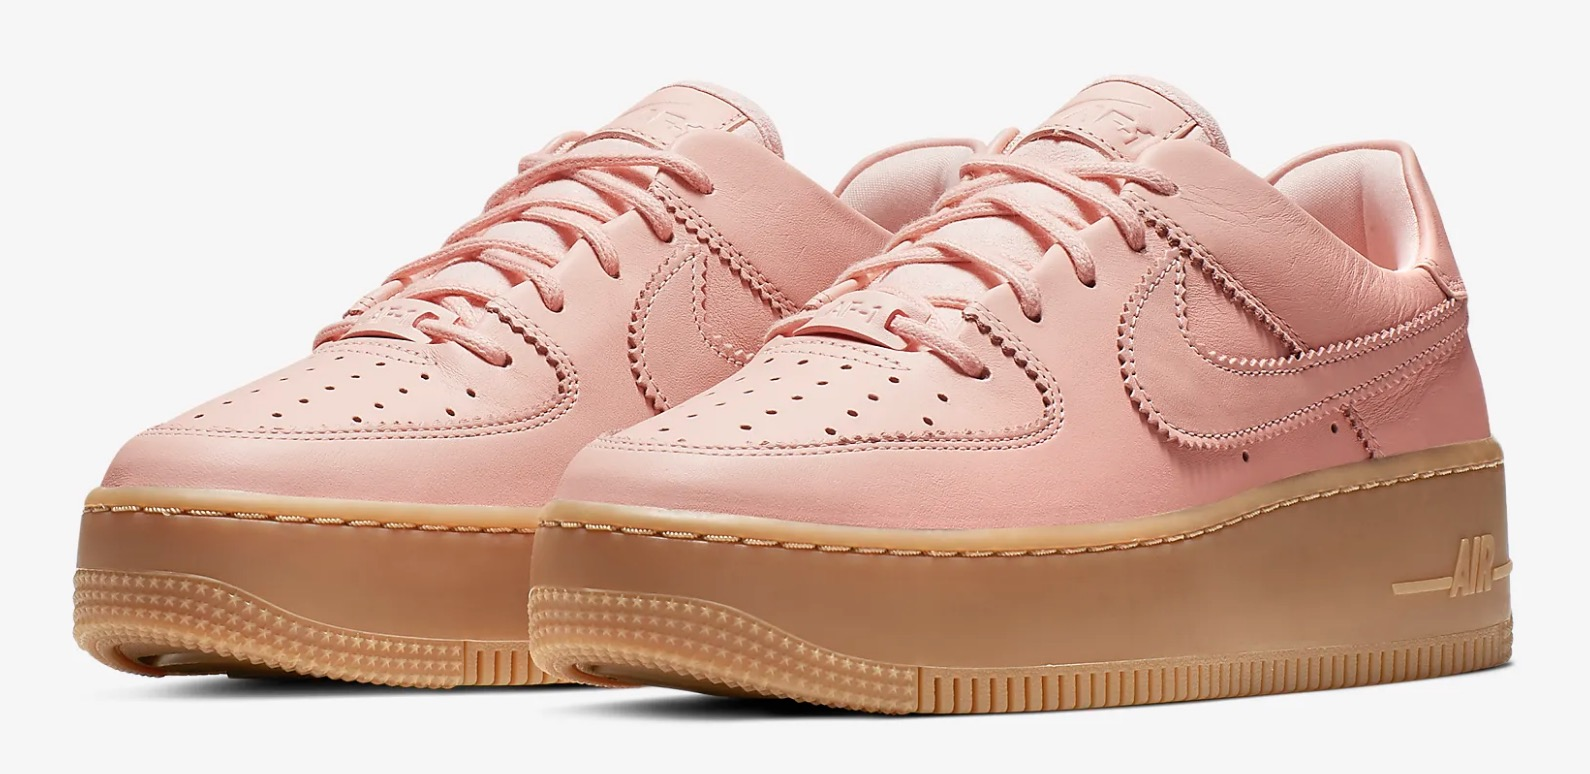 Get Nearly 50% Off This Pink Nike Air Force 1 Sage In Washed Coral 5 diaognal